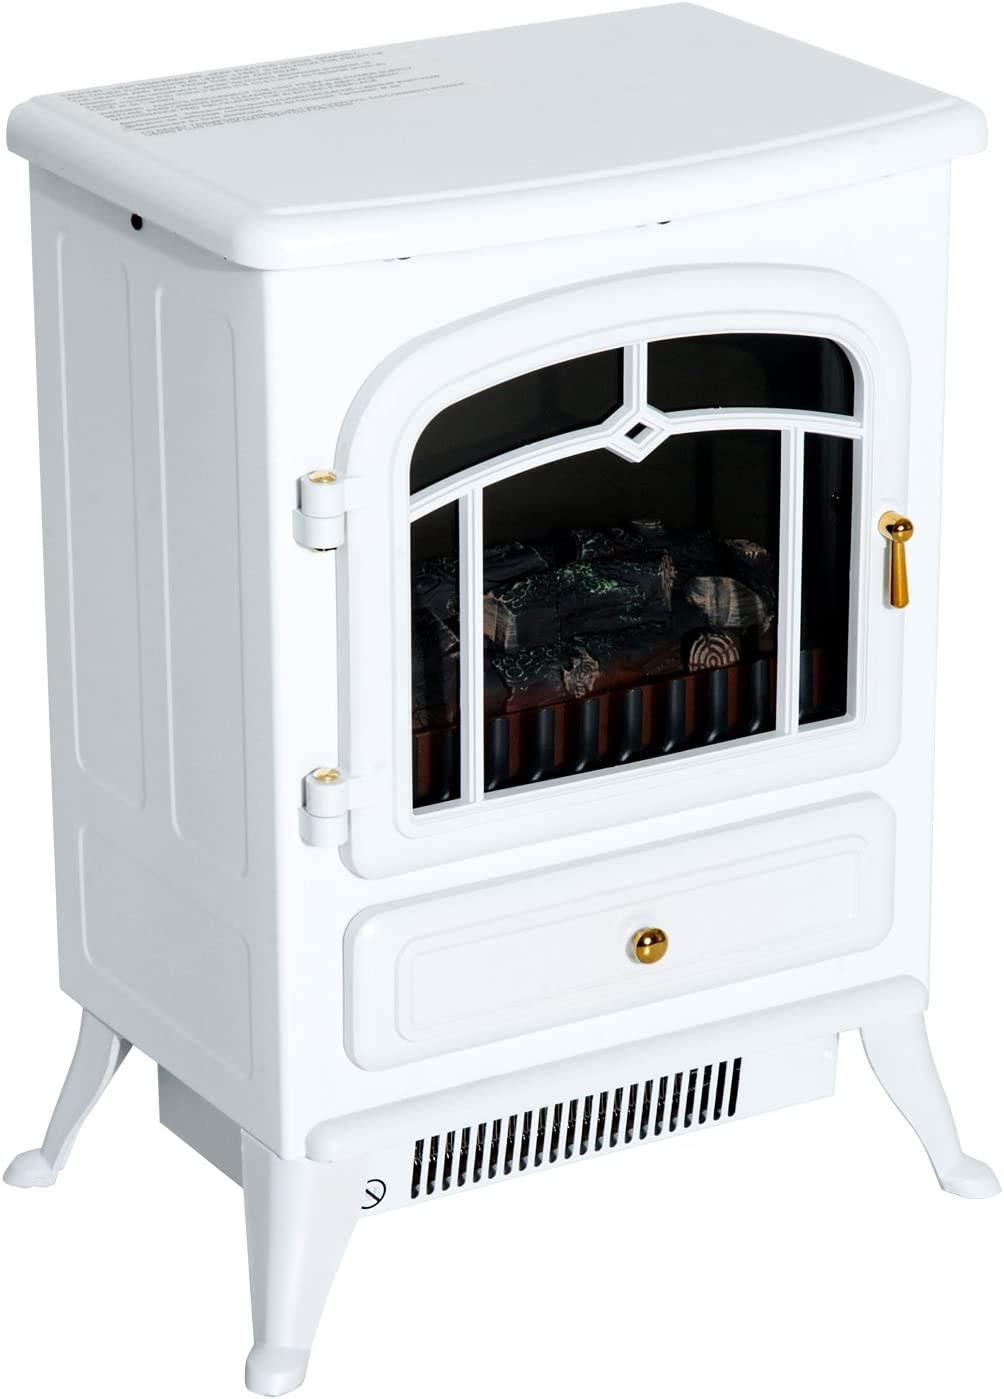 Homcom 16 Free Standing Electric Fireplace Portable Adjustable Stove With Heater Wood Burning Flame 750 1500w White Amazon Ca Home Kitchen